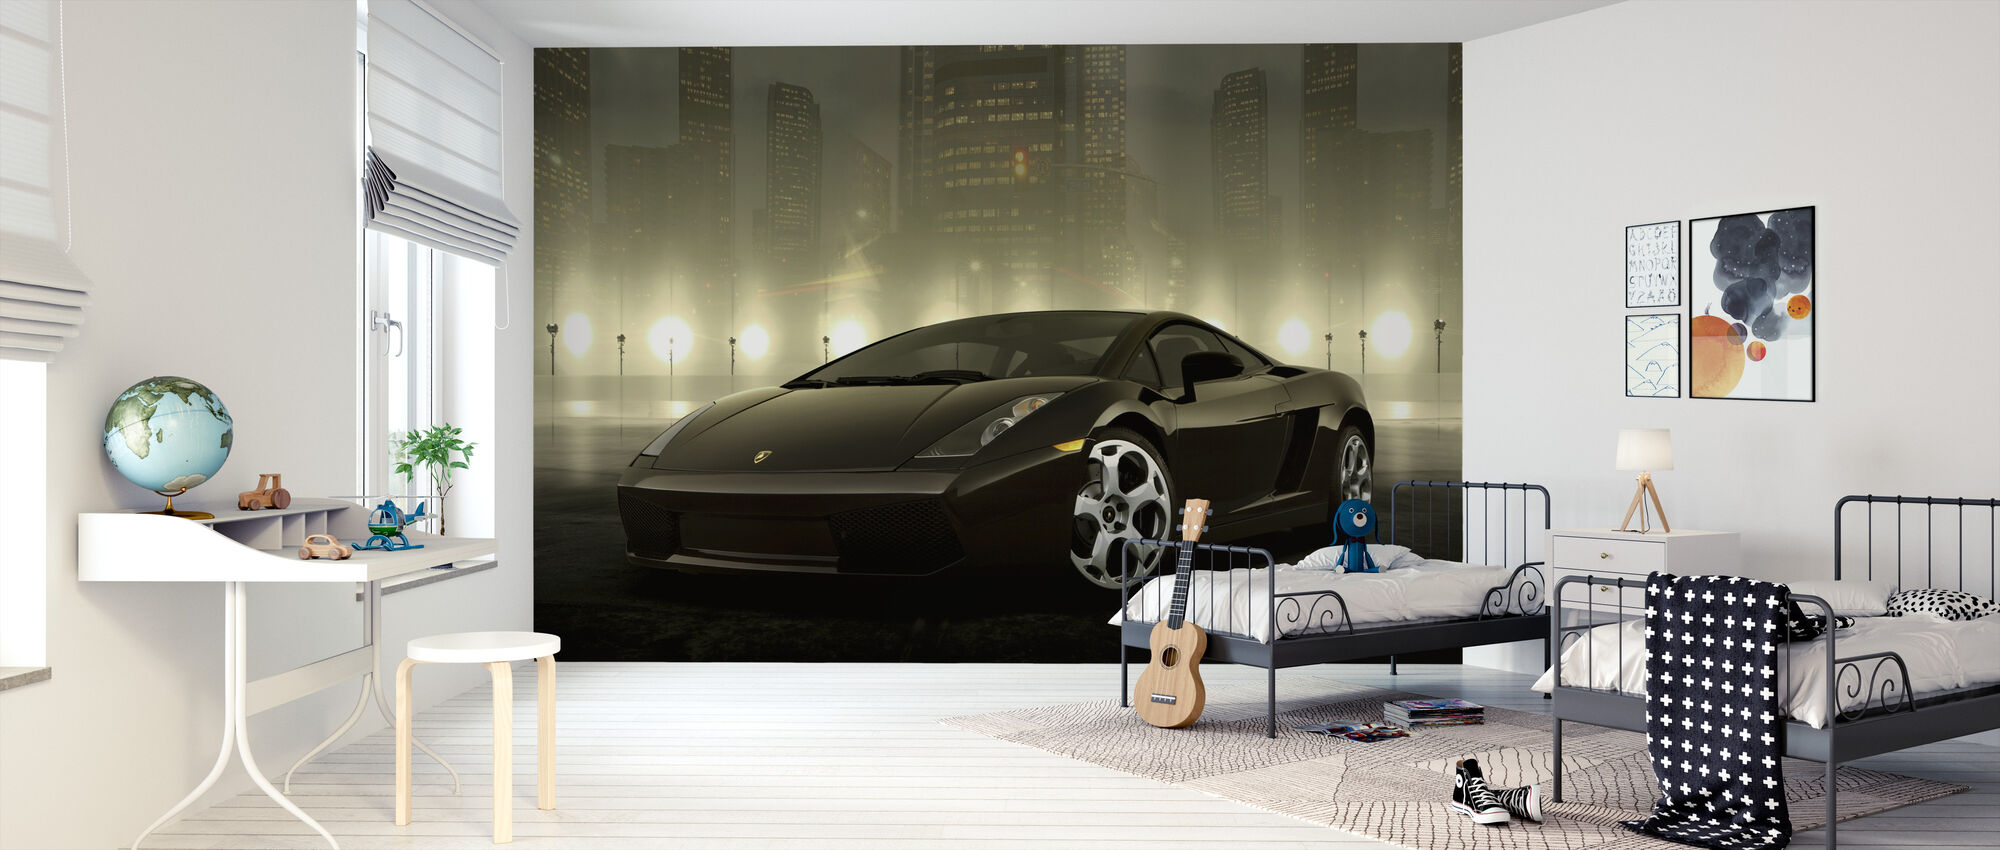 Dark Lamborghini - Wallpaper - Kids Room